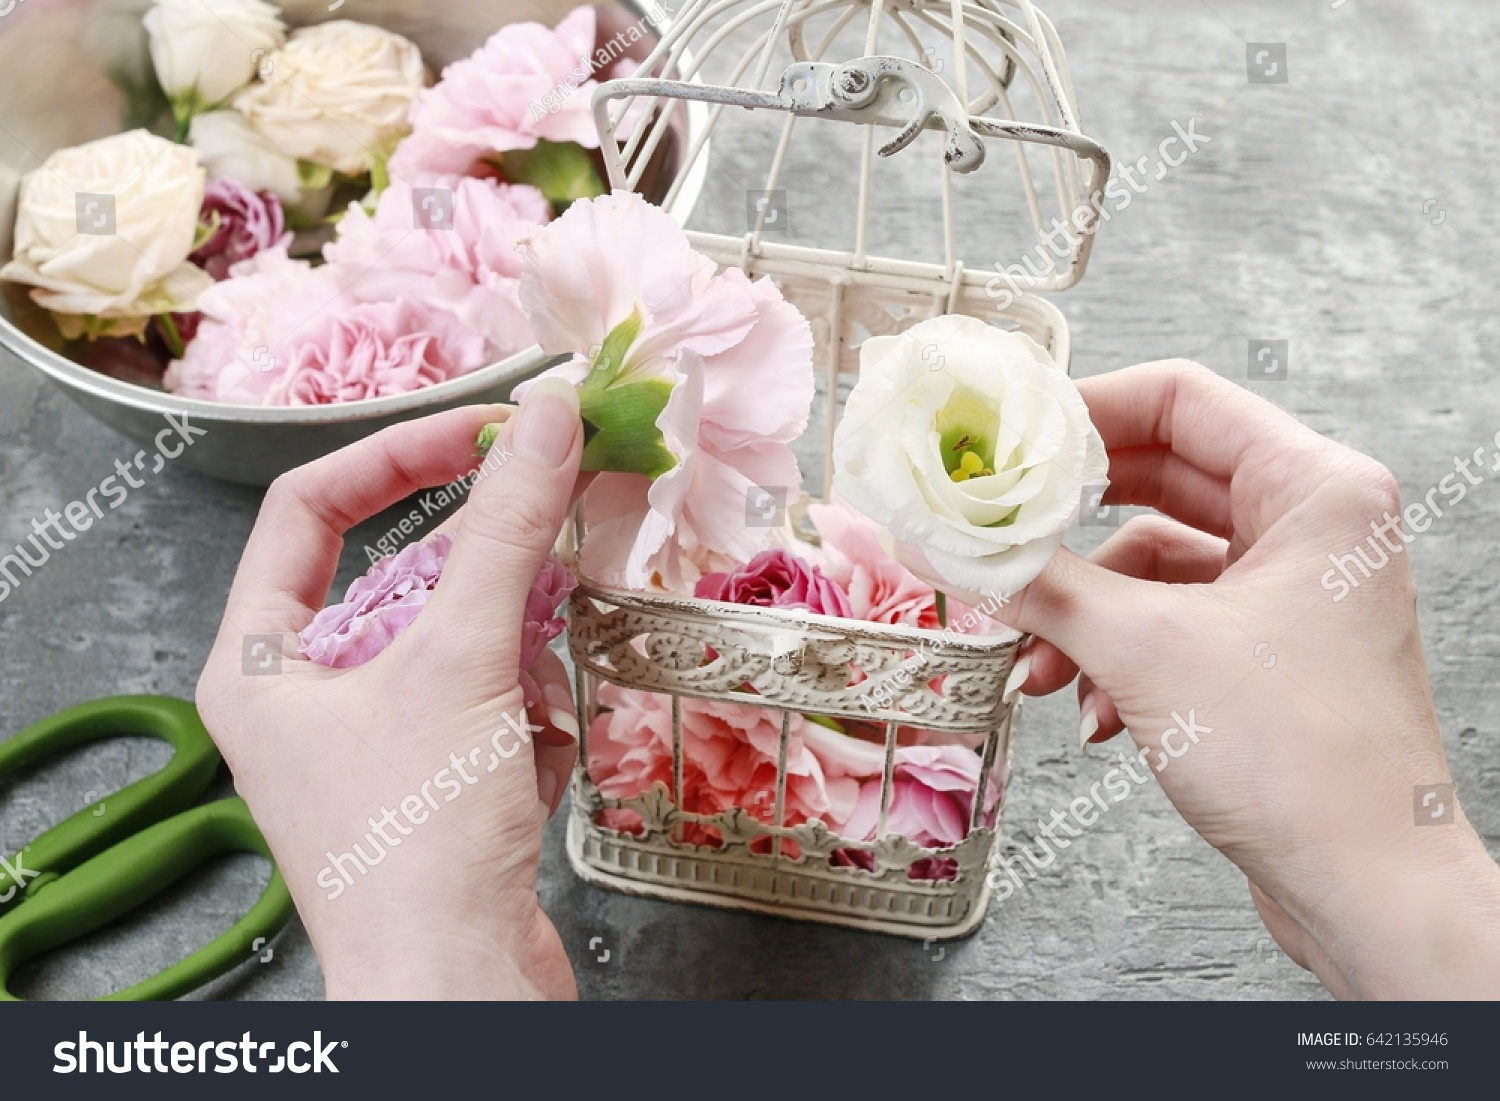 Florist work how make wedding decoration stock photo 642135946 florist at work how to make wedding decoration with vintage birdcage and fresh flowers izmirmasajfo Gallery